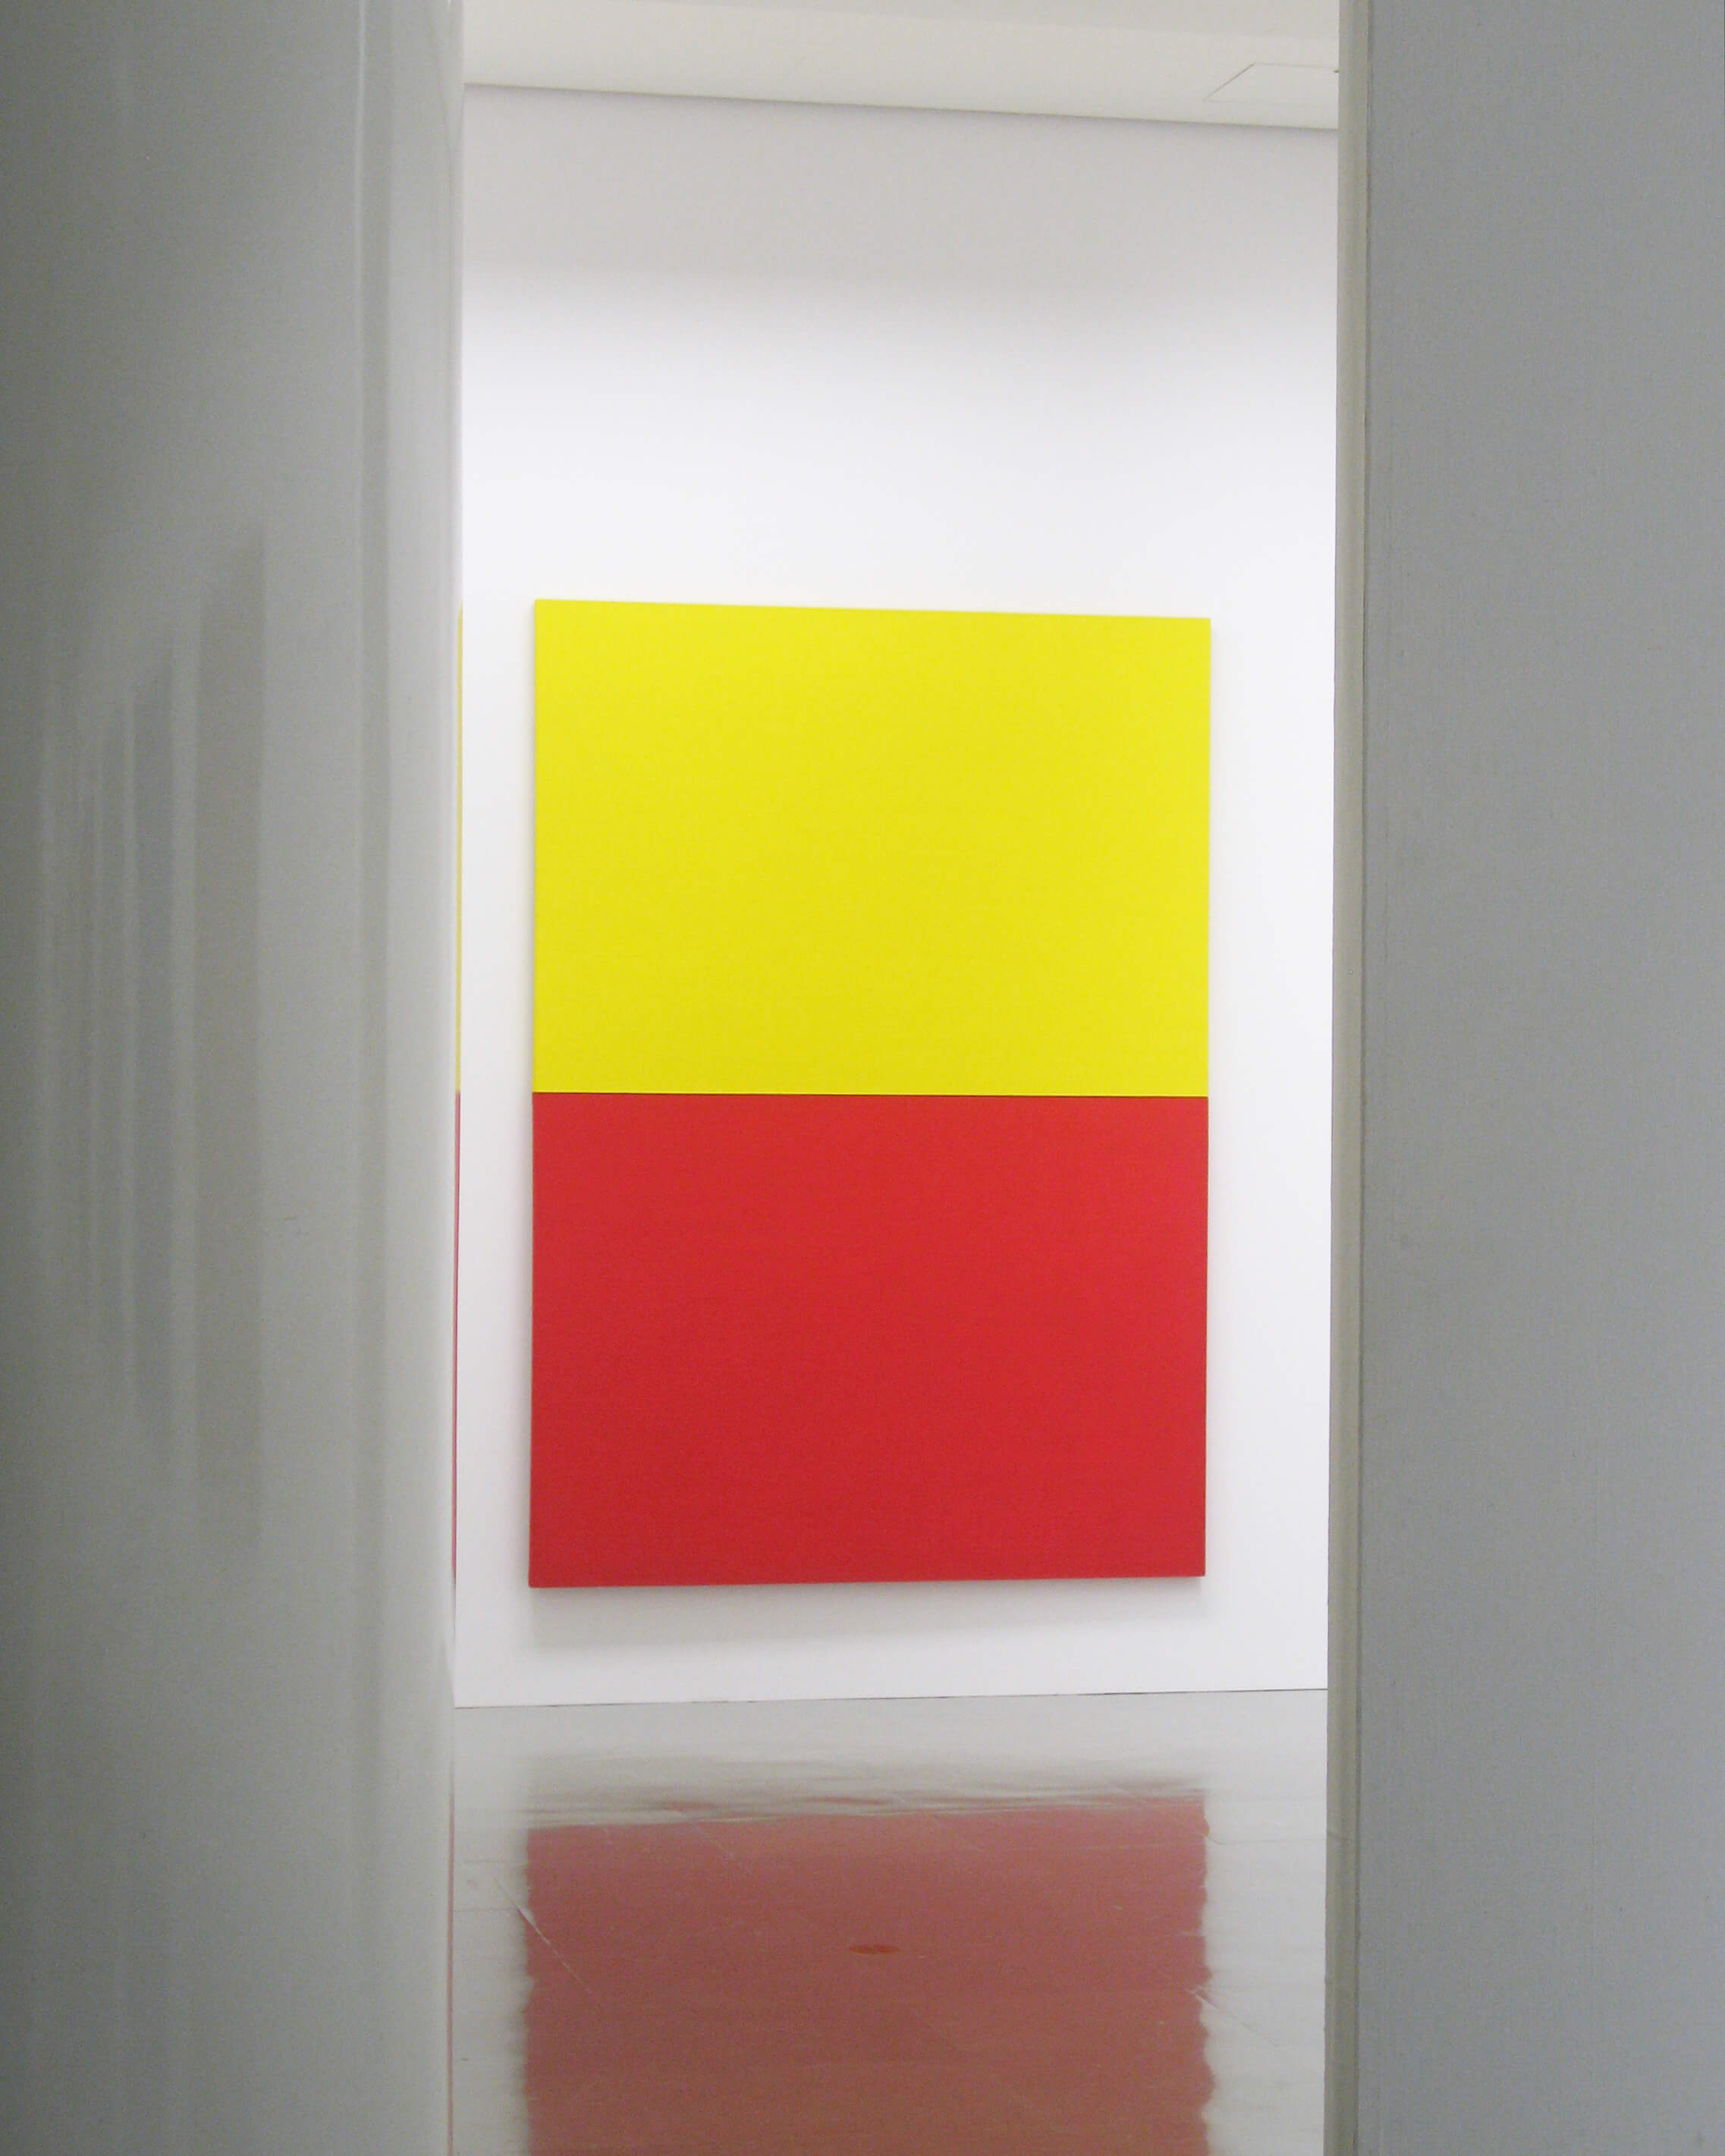 yellow and red 1962<br>acrylic, pigment on canvas (2 panels), 243.5 x 173.5 cm / courtesy of Gallery Yamaguchi, Osaka